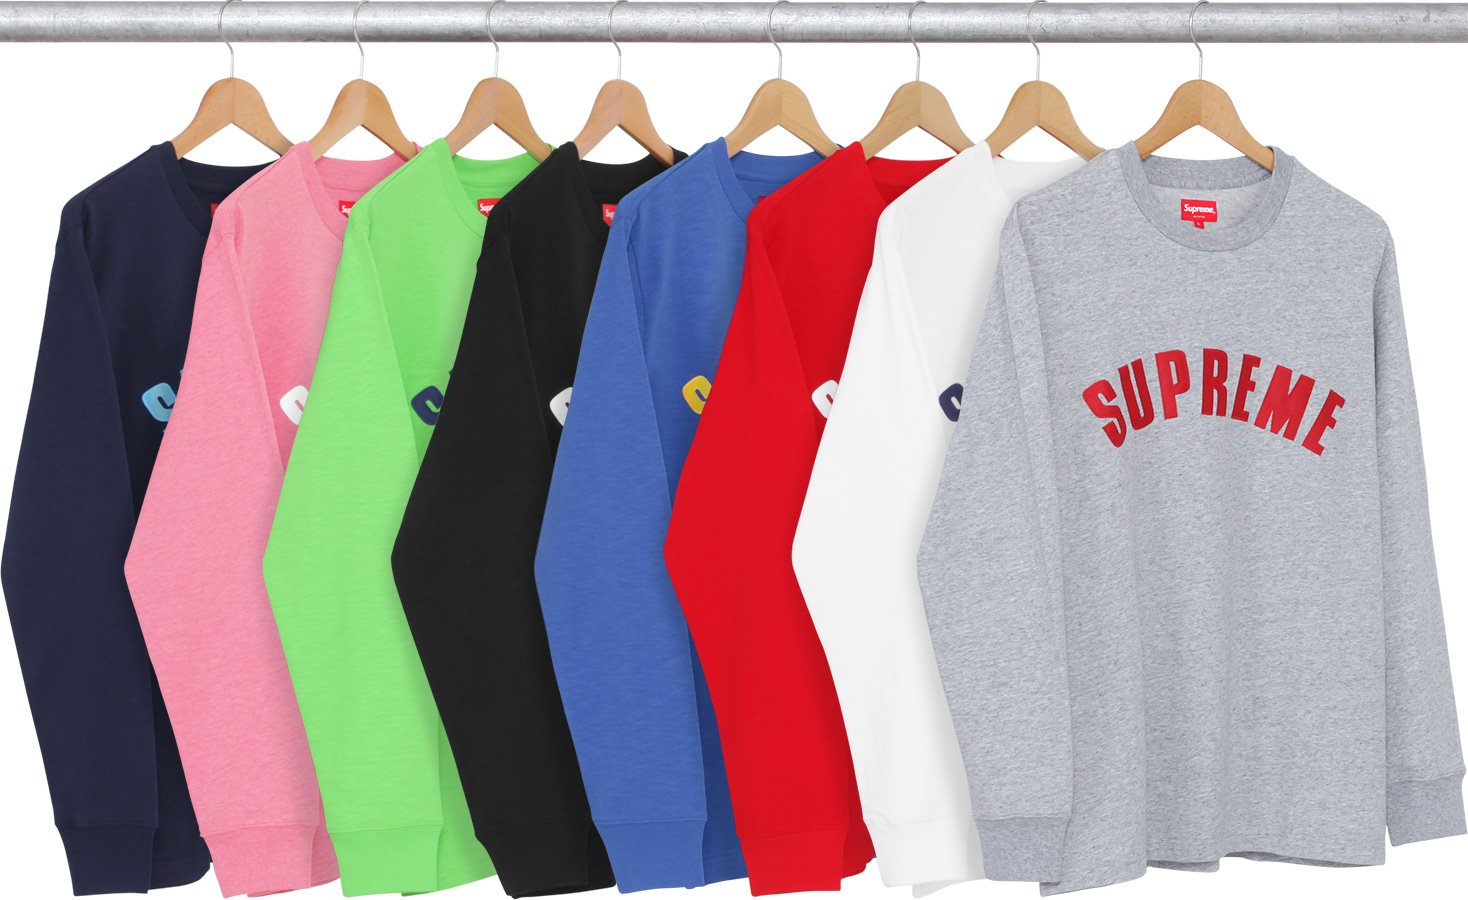 supreme-2016-spring-summer-collection-recommend-item